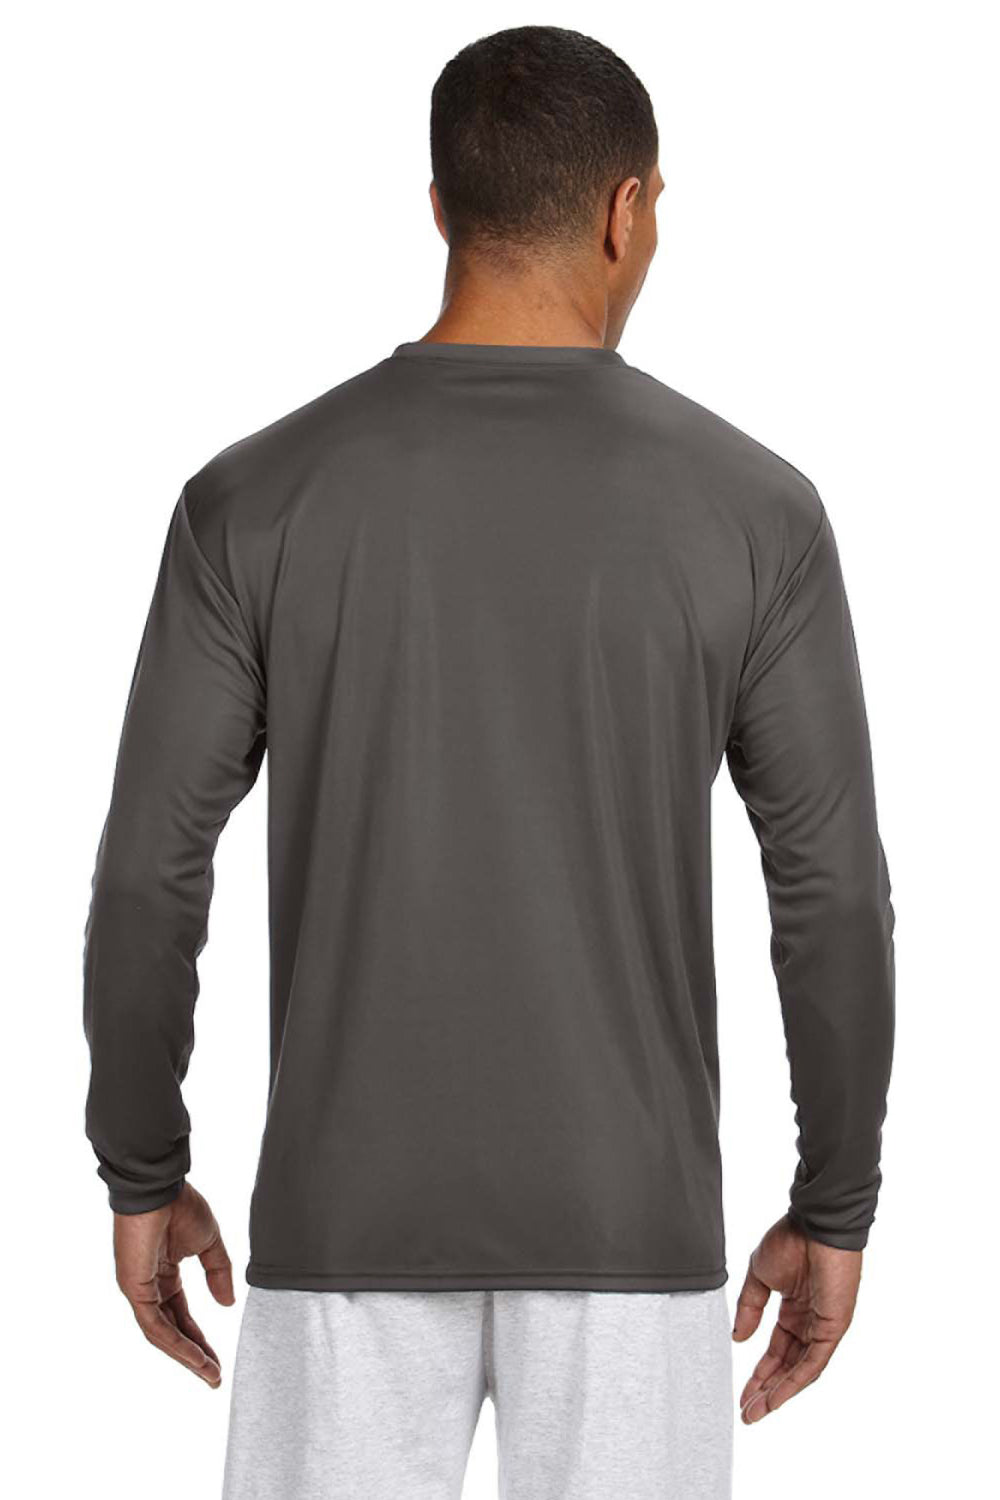 A4 N3165 Mens Cooling Performance Moisture Wicking Long Sleeve Crewneck T-Shirt Graphite Grey Back